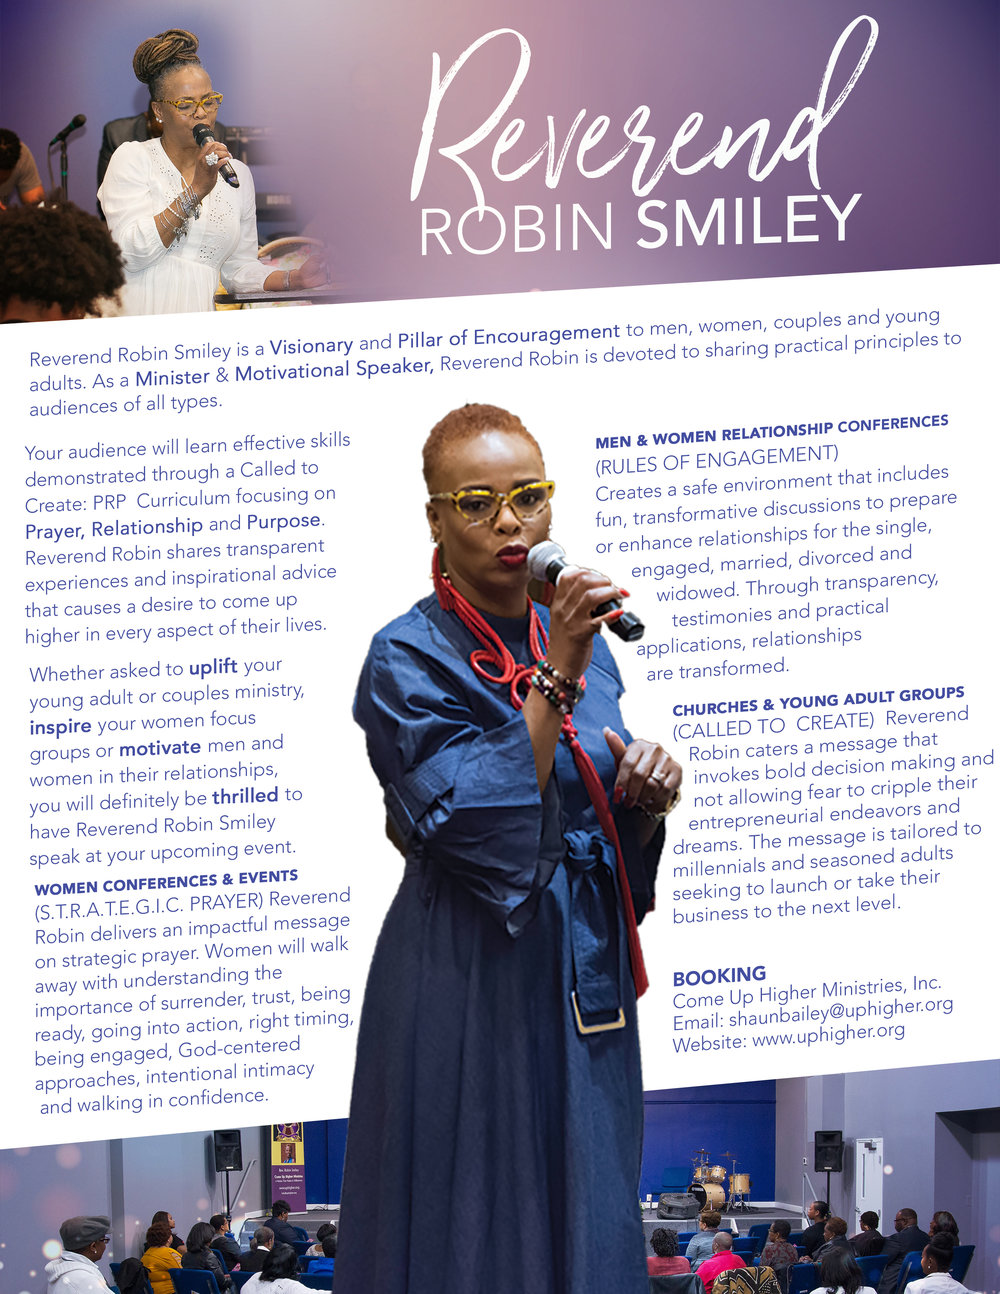 Rev.RobinS Marketing 1 Sheet.jpg